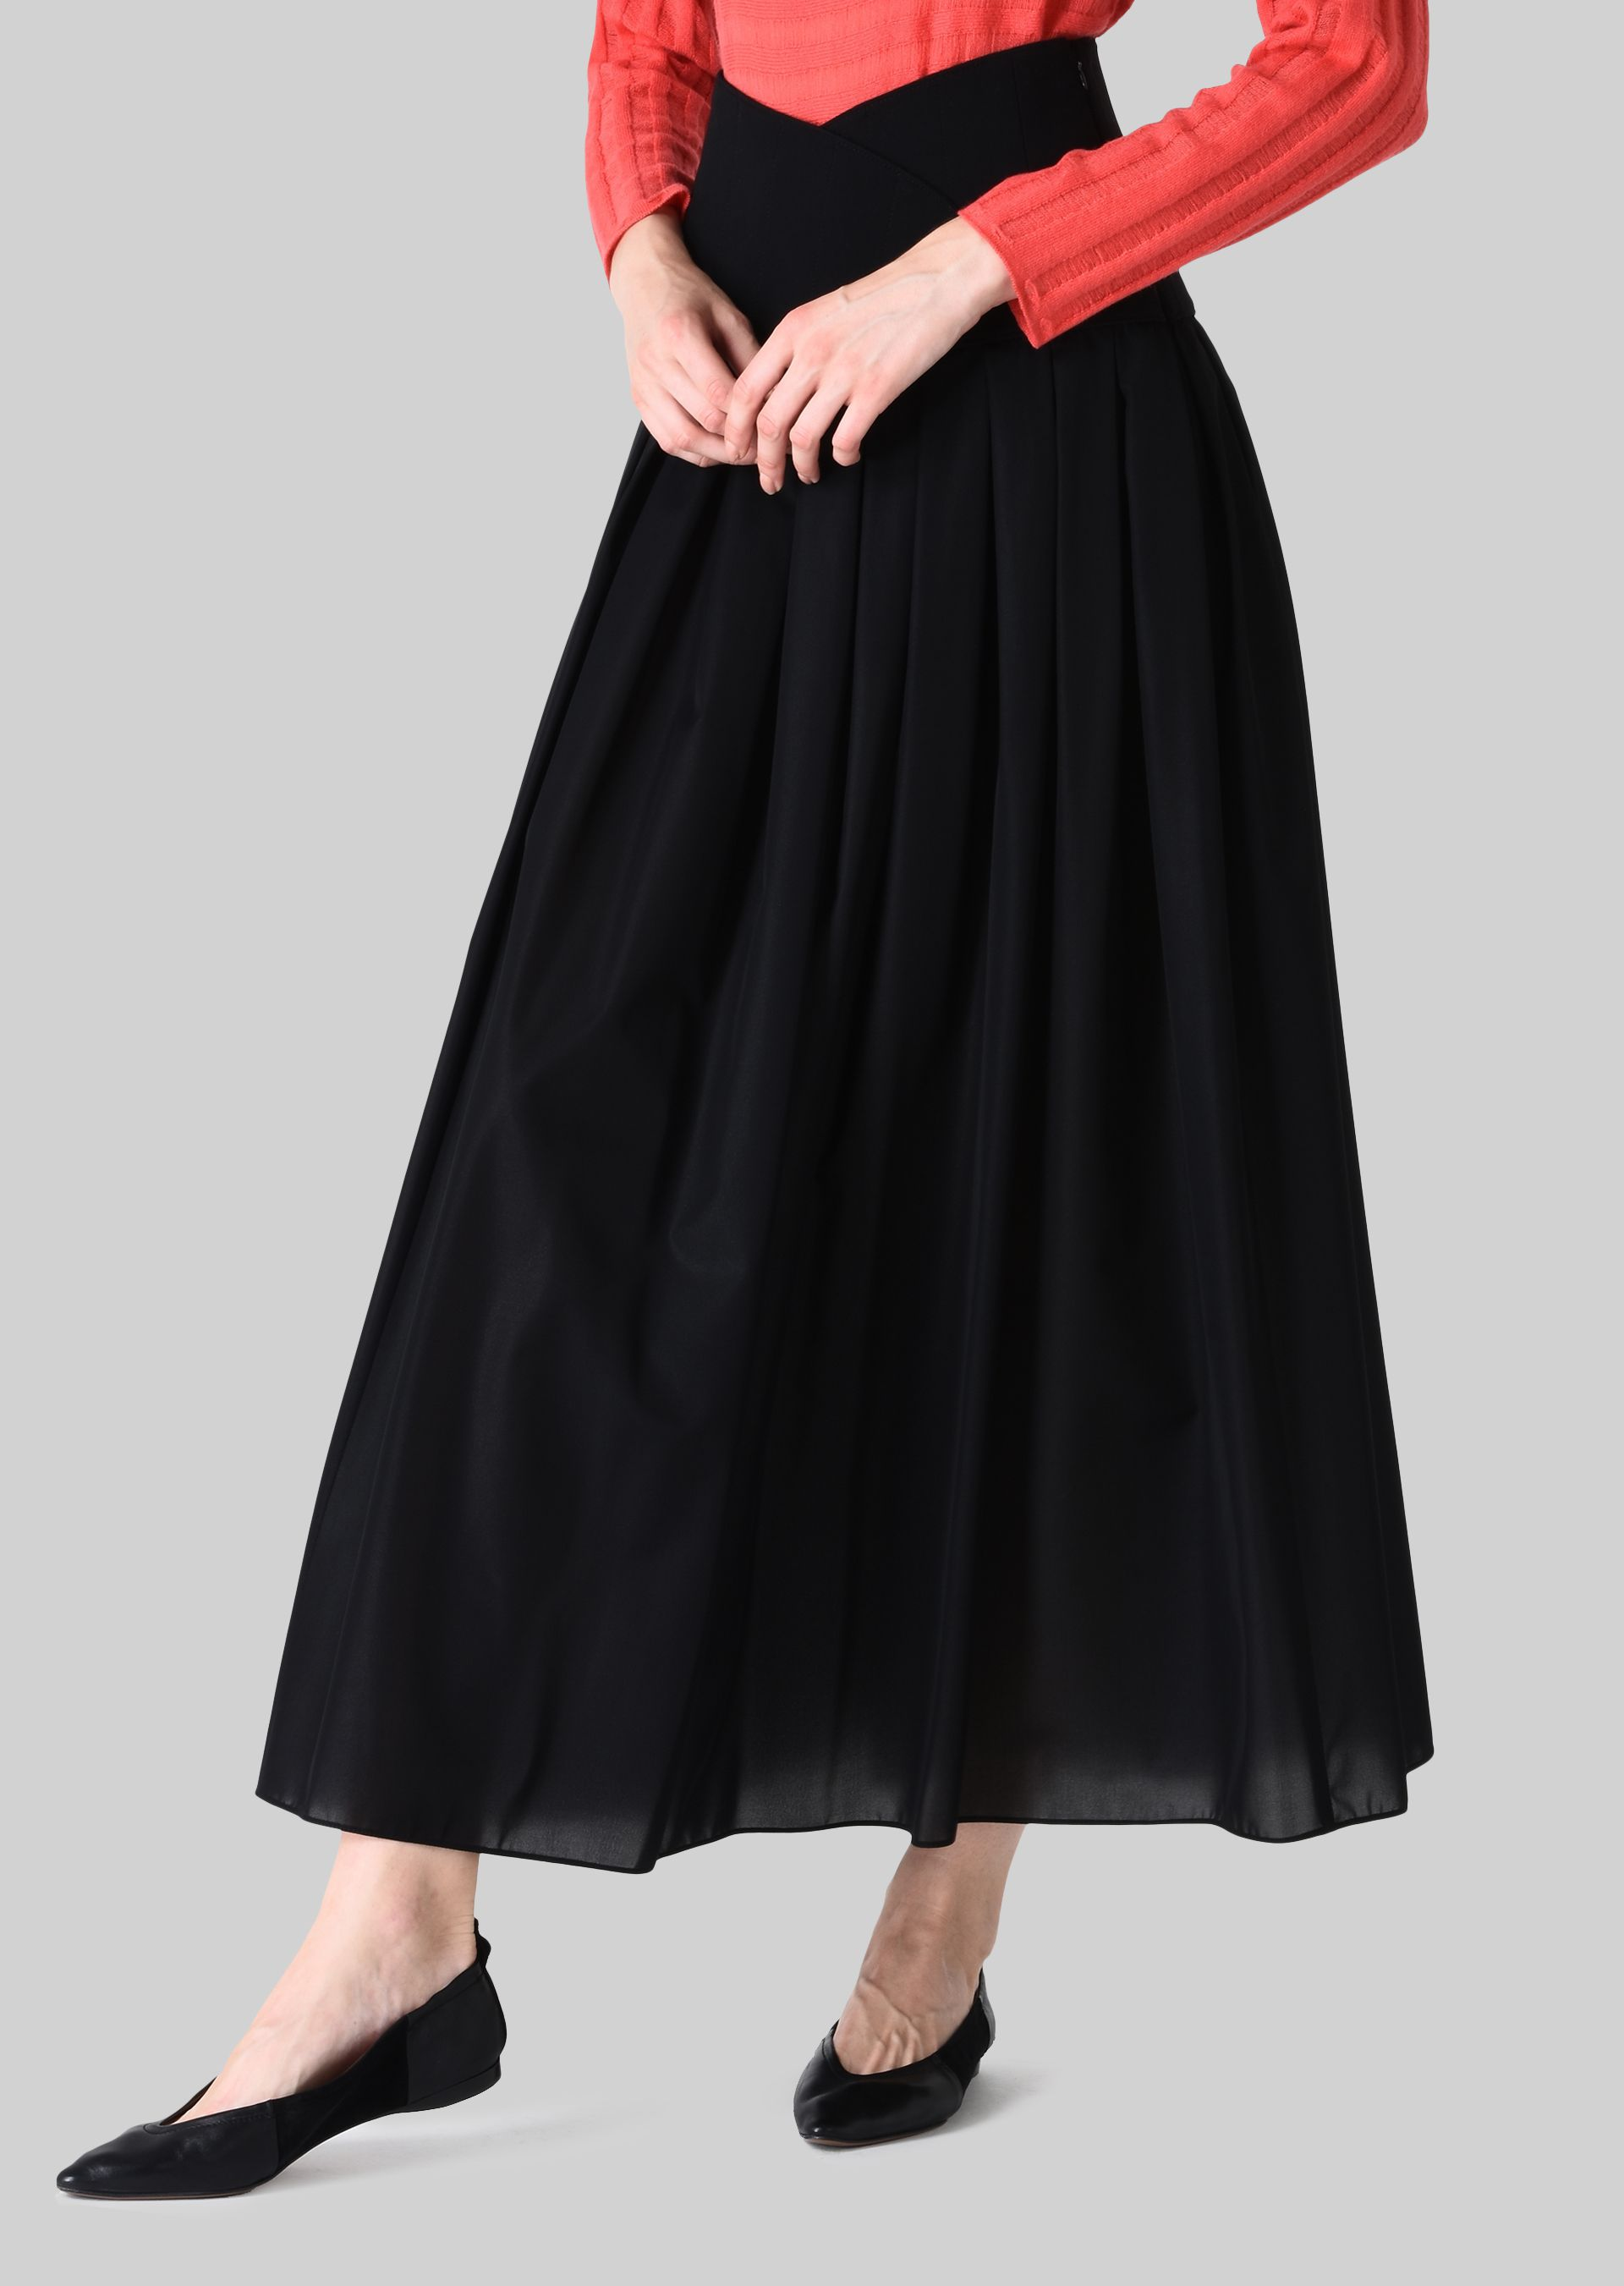 GIORGIO ARMANI LONG SKIRT IN TECHNICAL CRÊPE DE CHINE. Skirt D d